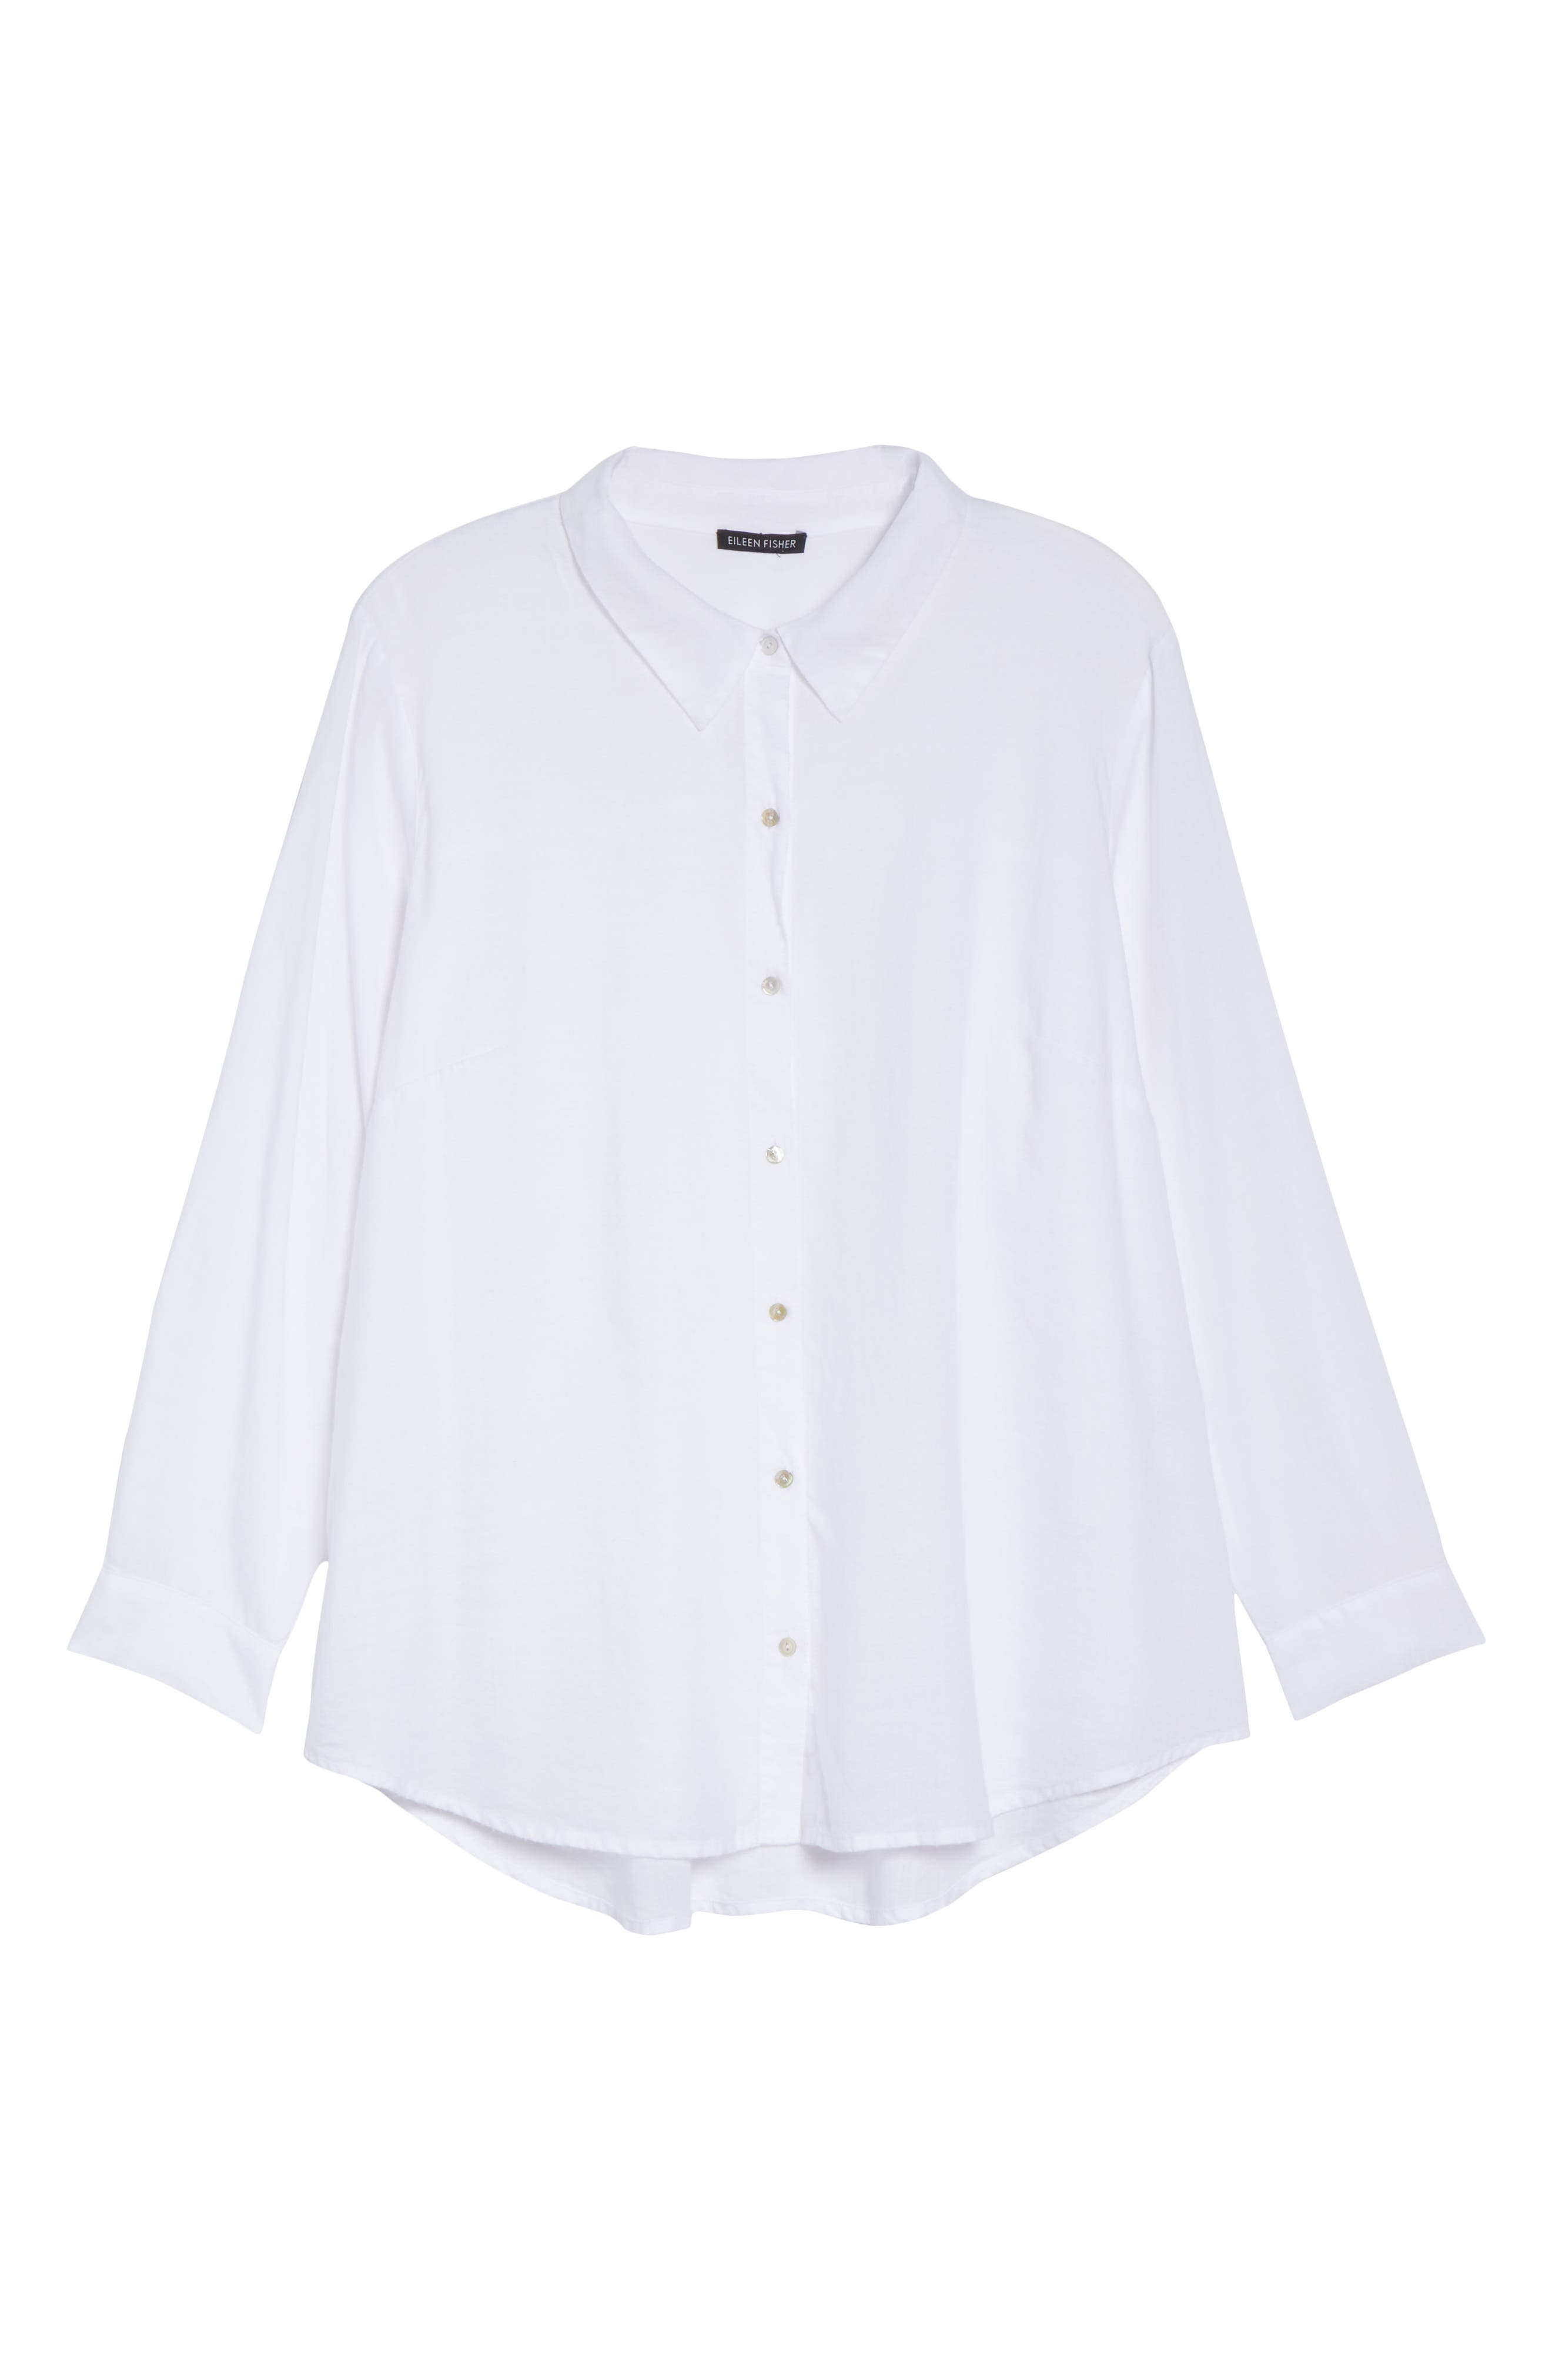 EILEEN FISHER, Tencel<sup>®</sup> Lyocell Shirt, Alternate thumbnail 6, color, WHITE